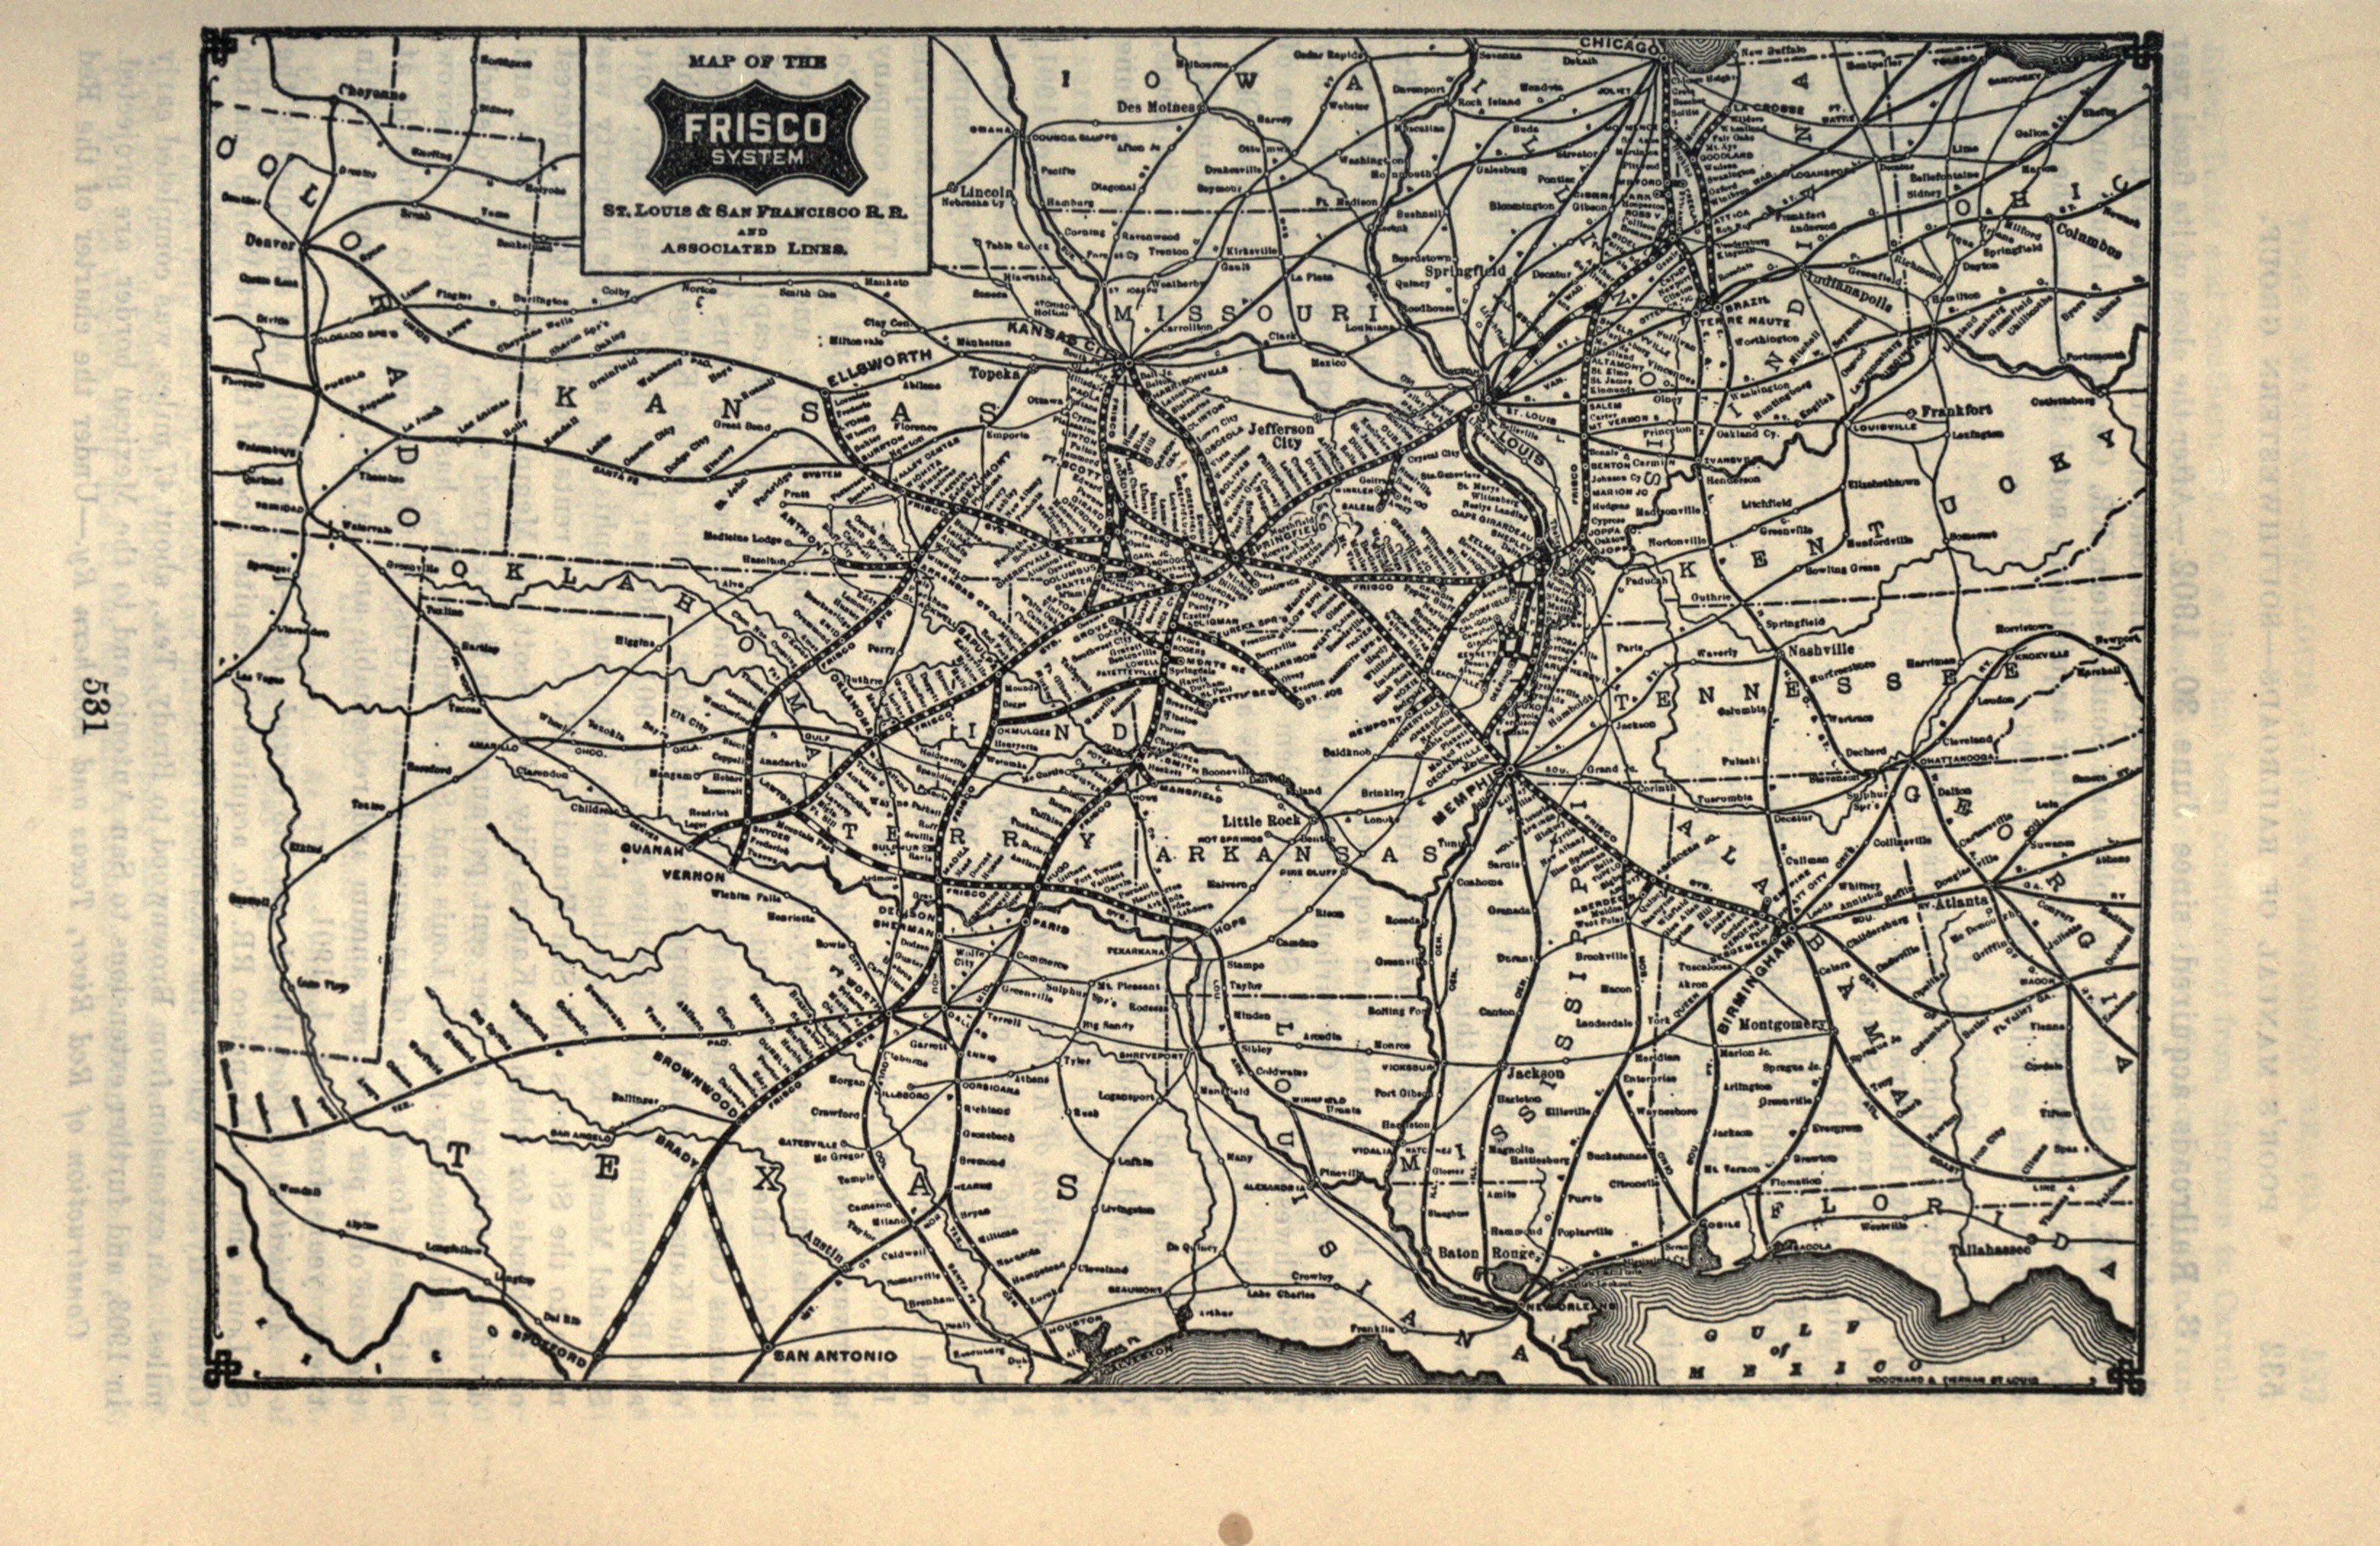 File:1903 Poor's St. Louis and San Francisco Railroad.jpg ... on new york underground railroad map, florida railroad map, baton rouge railroad map, western ny railroad map, sacramento valley railroad map, new york city railroad map, corpus christi railroad map, newport news railroad map, nyc railroad map, fargo railroad map, gadsden purchase railroad map, worcester railroad map, knoxville railroad map, ny state railroad map, pacific harbor railroad map, seattle railroad map, council bluffs railroad map, denver railroad map, yokohama railroad map, houston railroad map,